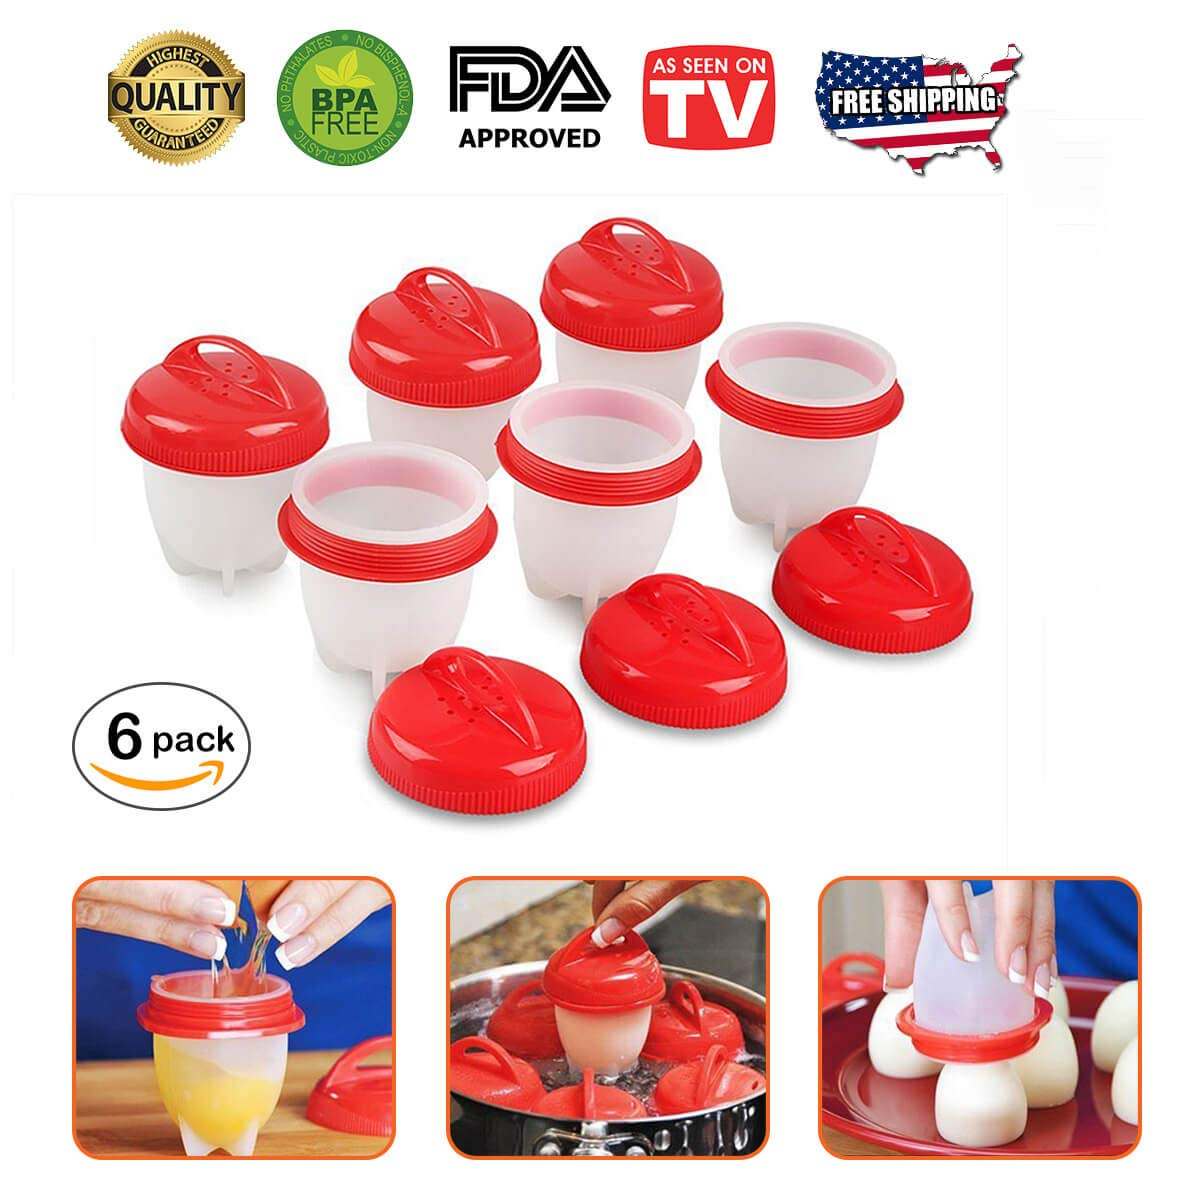 Egg Cooker Egg Poacher - As Seen On TV Hard Boiled Eggs Without The Shell! Hard Boiled Egg Maker, Egg Boiler, Silicone Egg Cooker (6 Piece Set) Nomlette by JGD